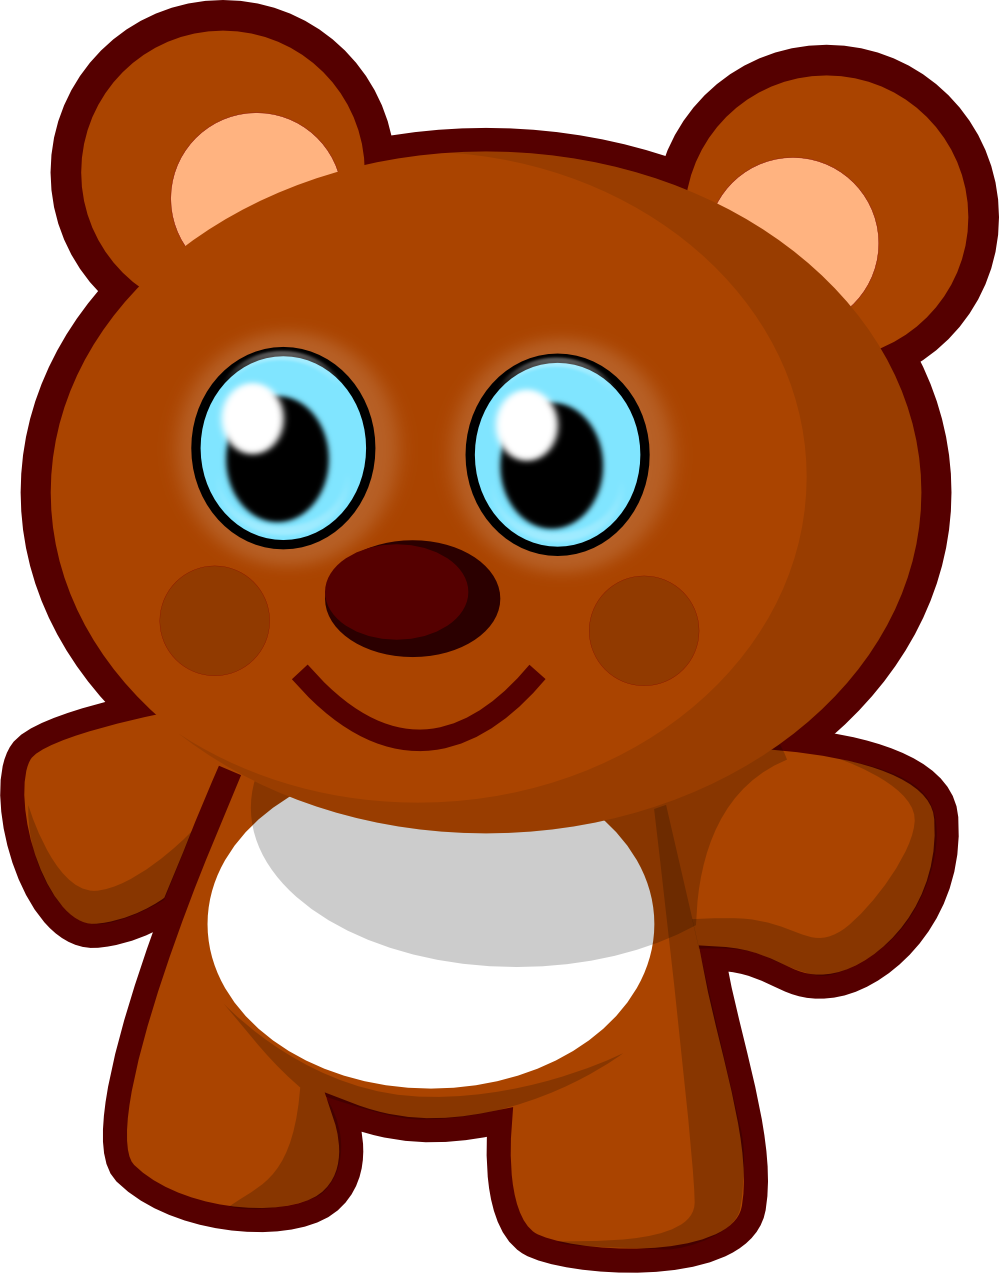 Bear clipart transparent background. Png free images image